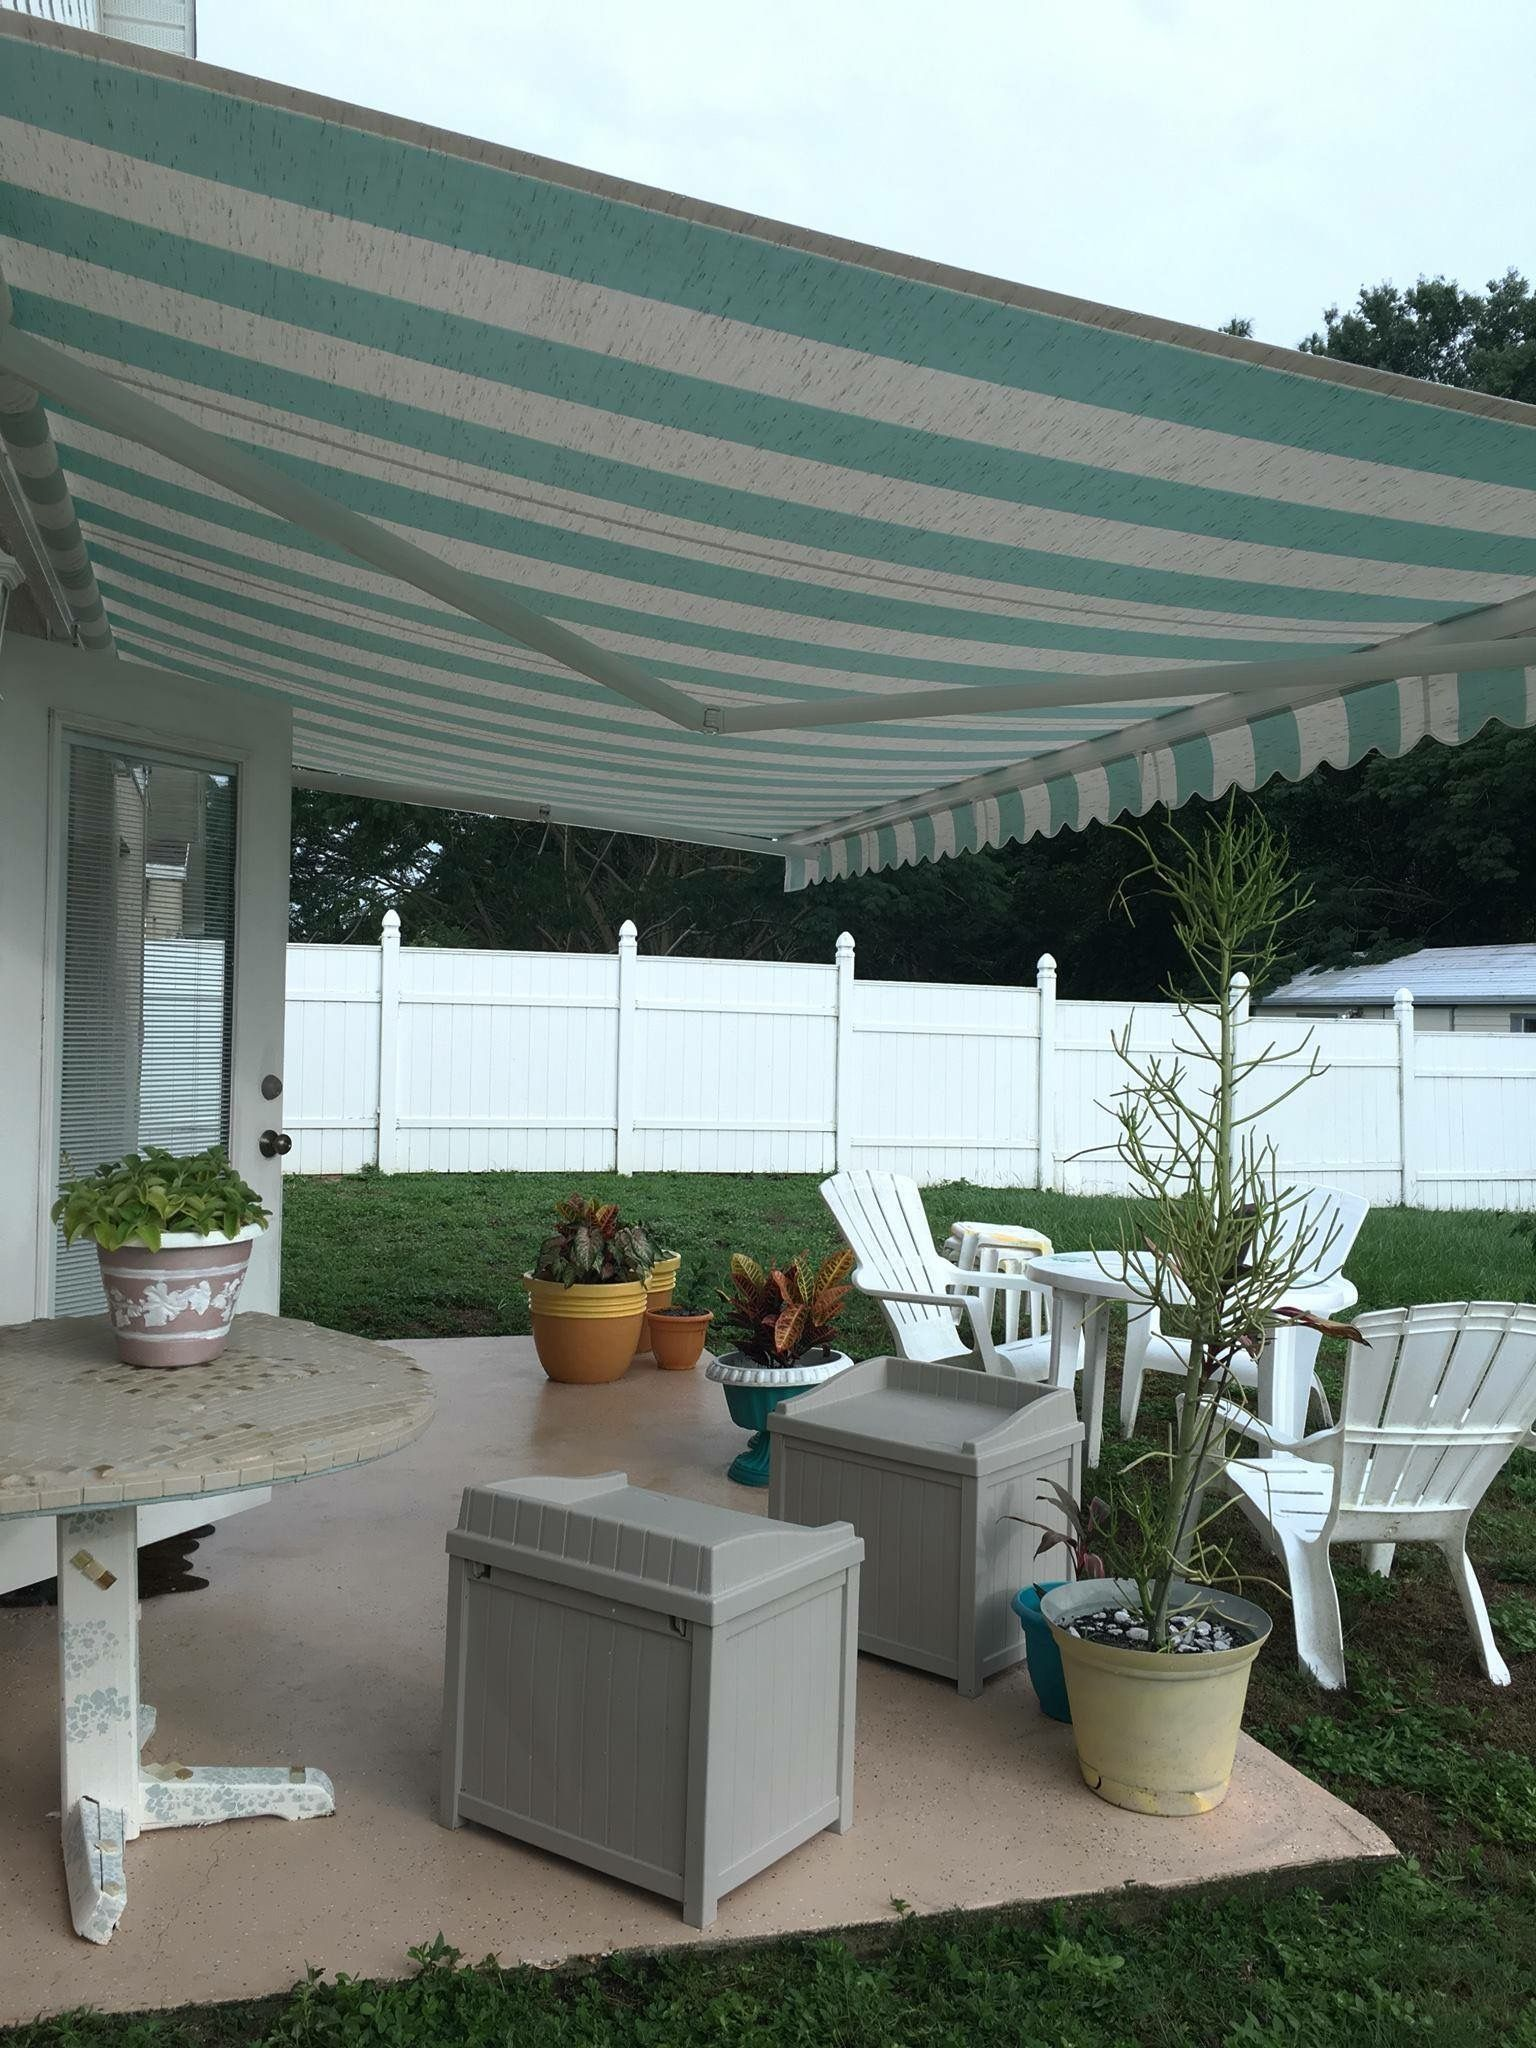 Beau DIY Awnings Retractable Over Doors Ideas, Patio Awnings Front Door, Awnings  For Windows And For Decks Metal, Indoor Awnings Window Porch, Fabric Canvas  And ...